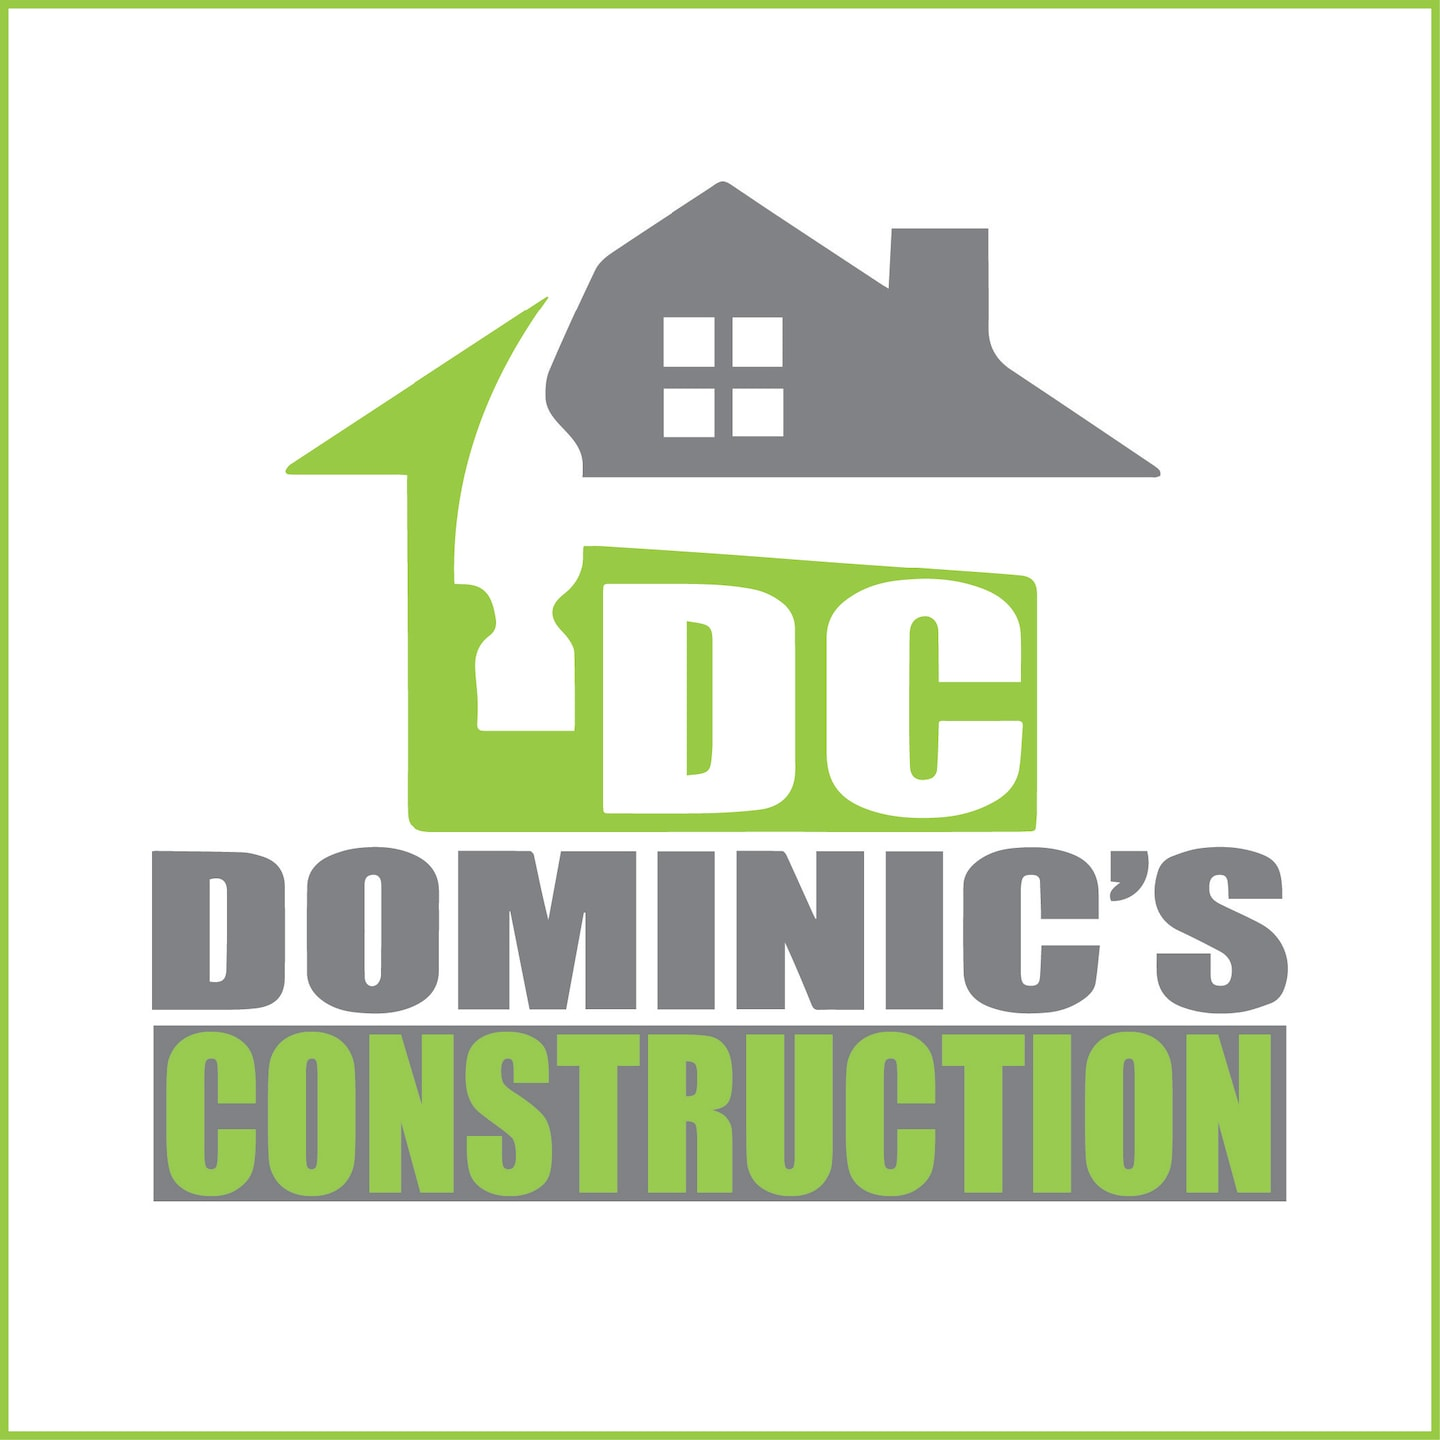 Dominic's Construction